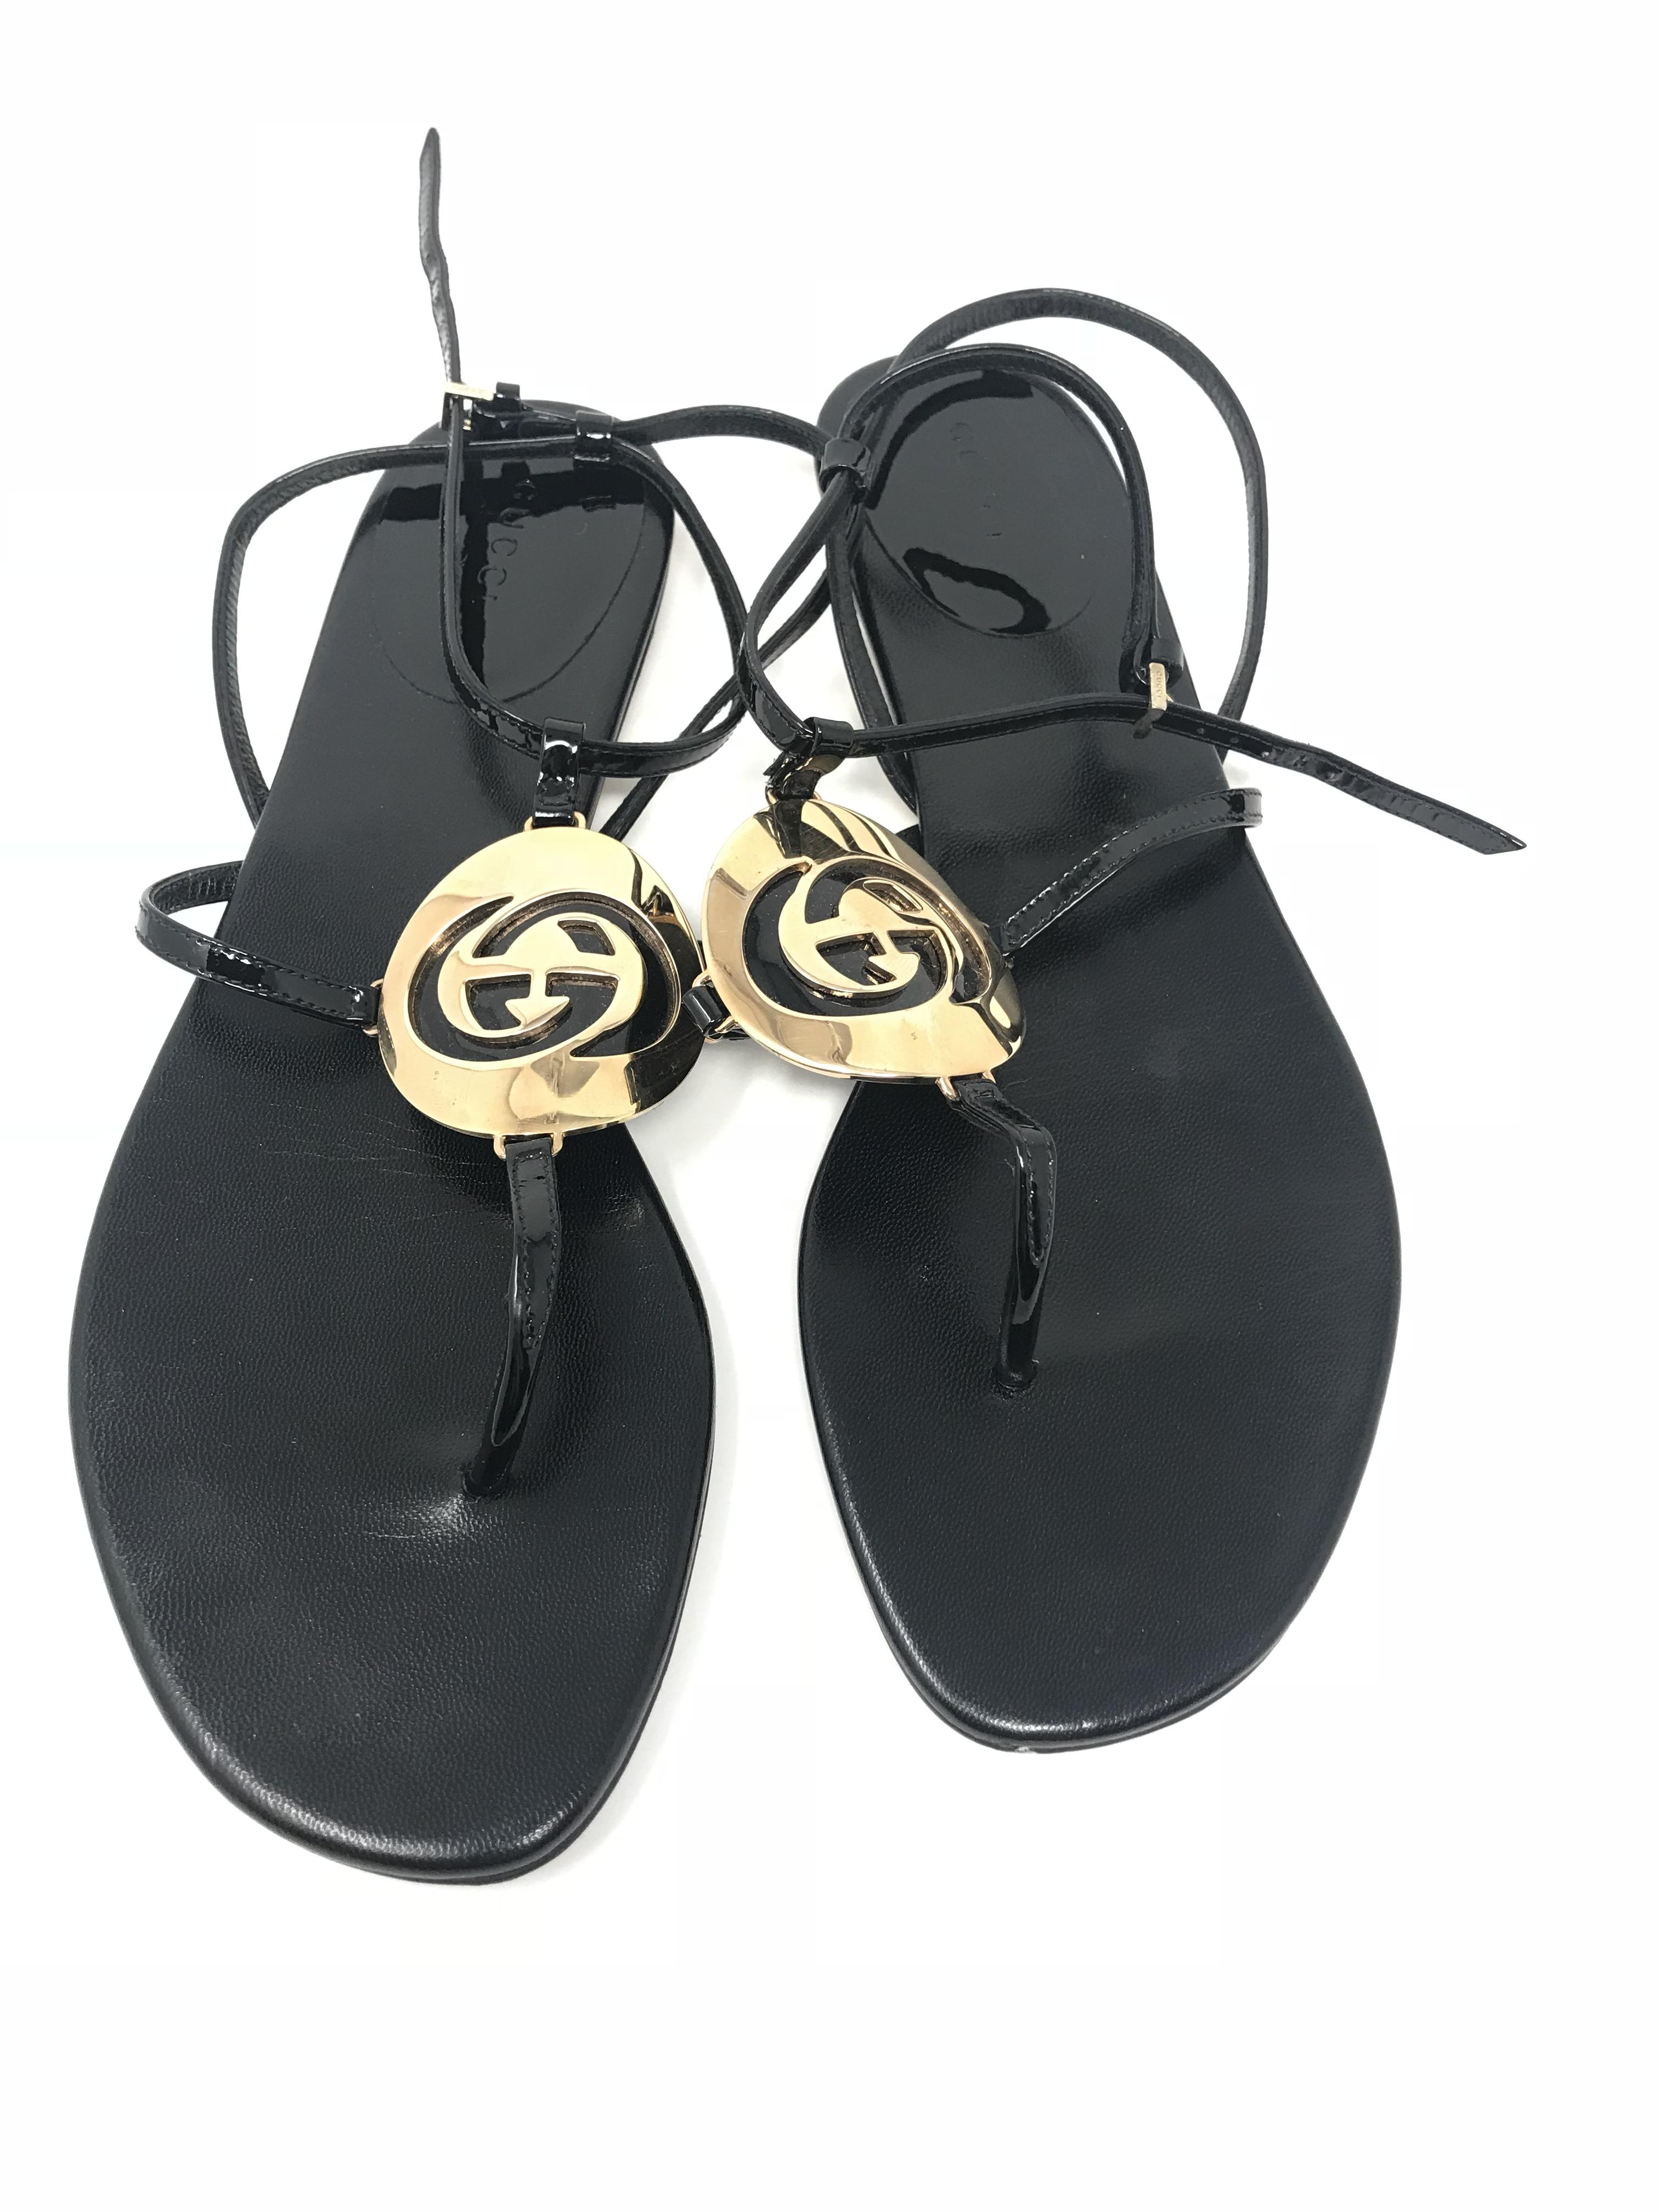 Gucci Shoes Price: $186.99